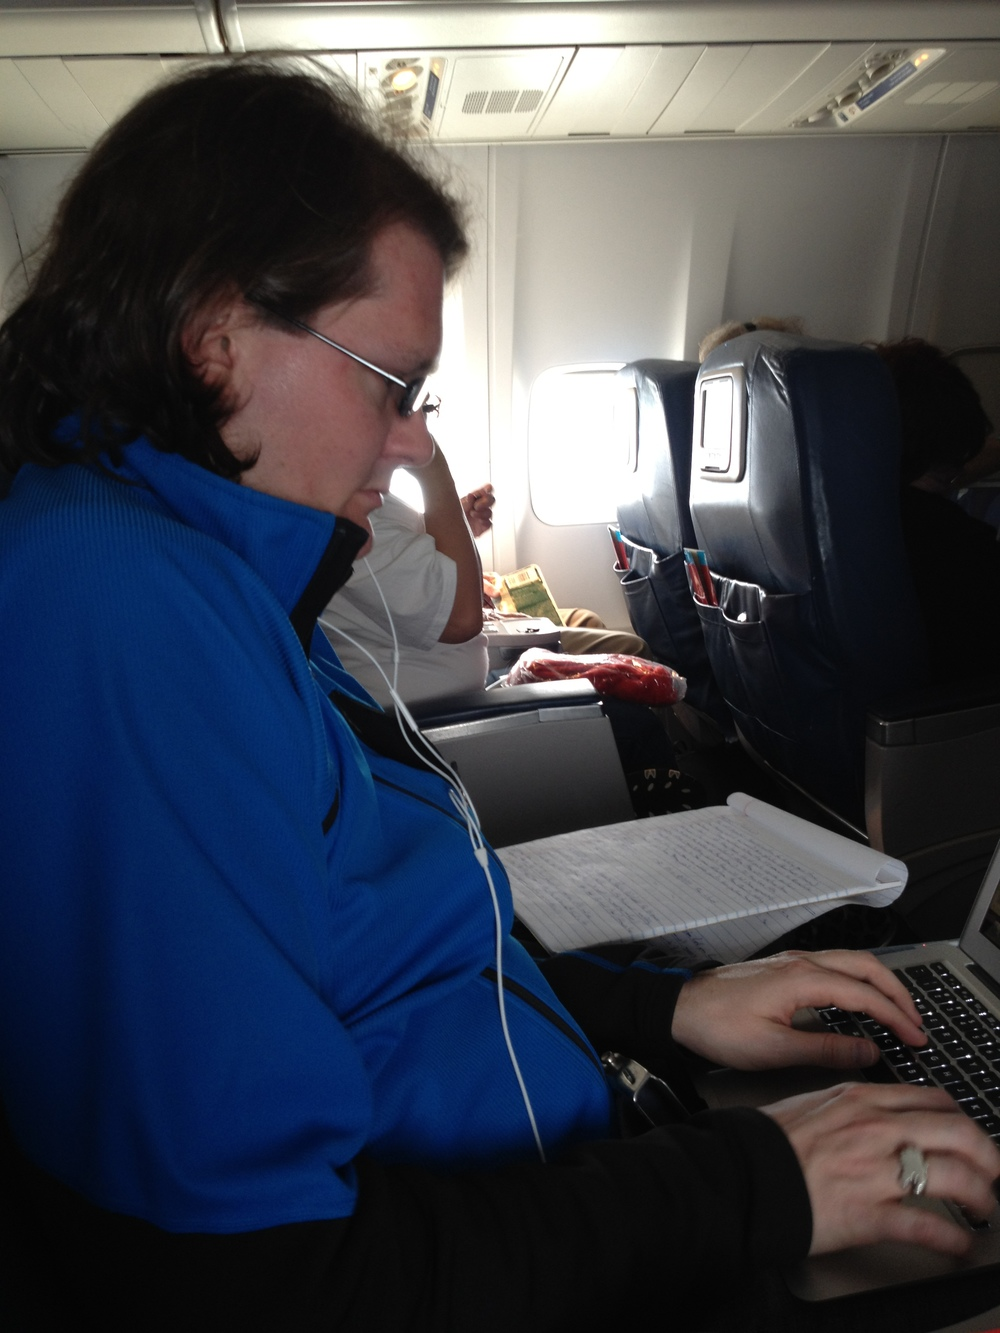 Robert works on the plane - Bermuda 2012